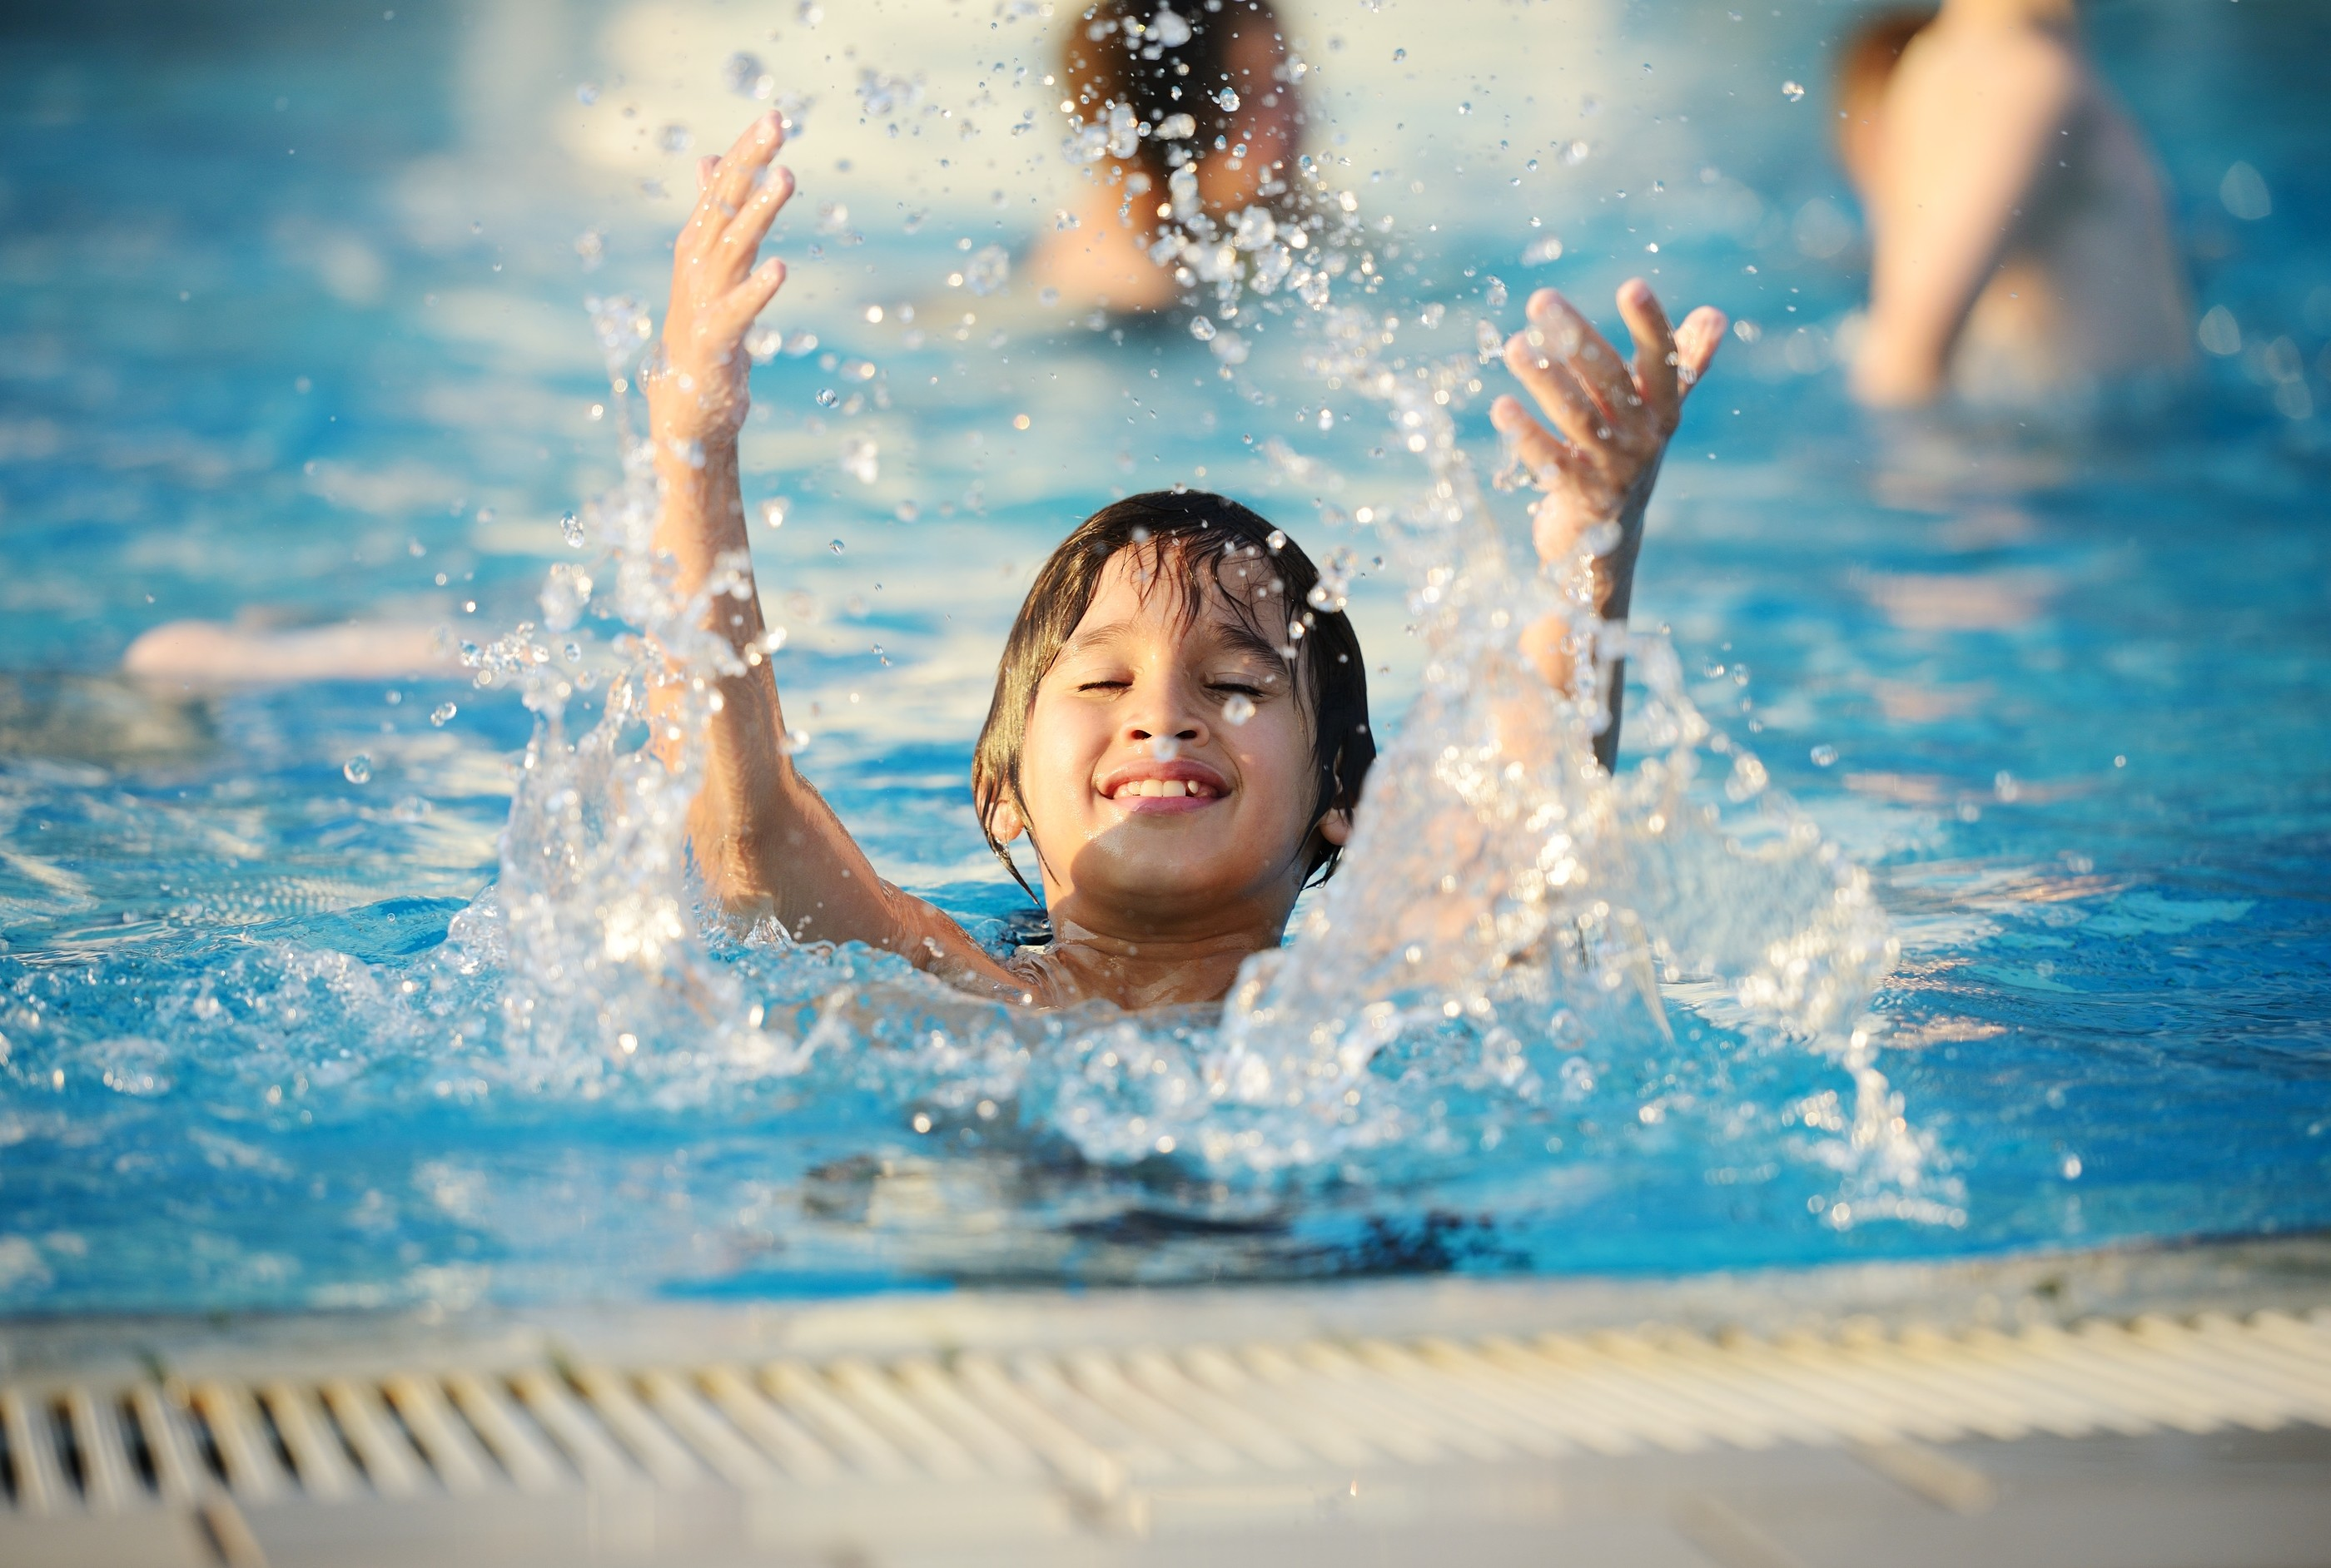 Kids in Swimming Pool Wallpaper (64+ images)